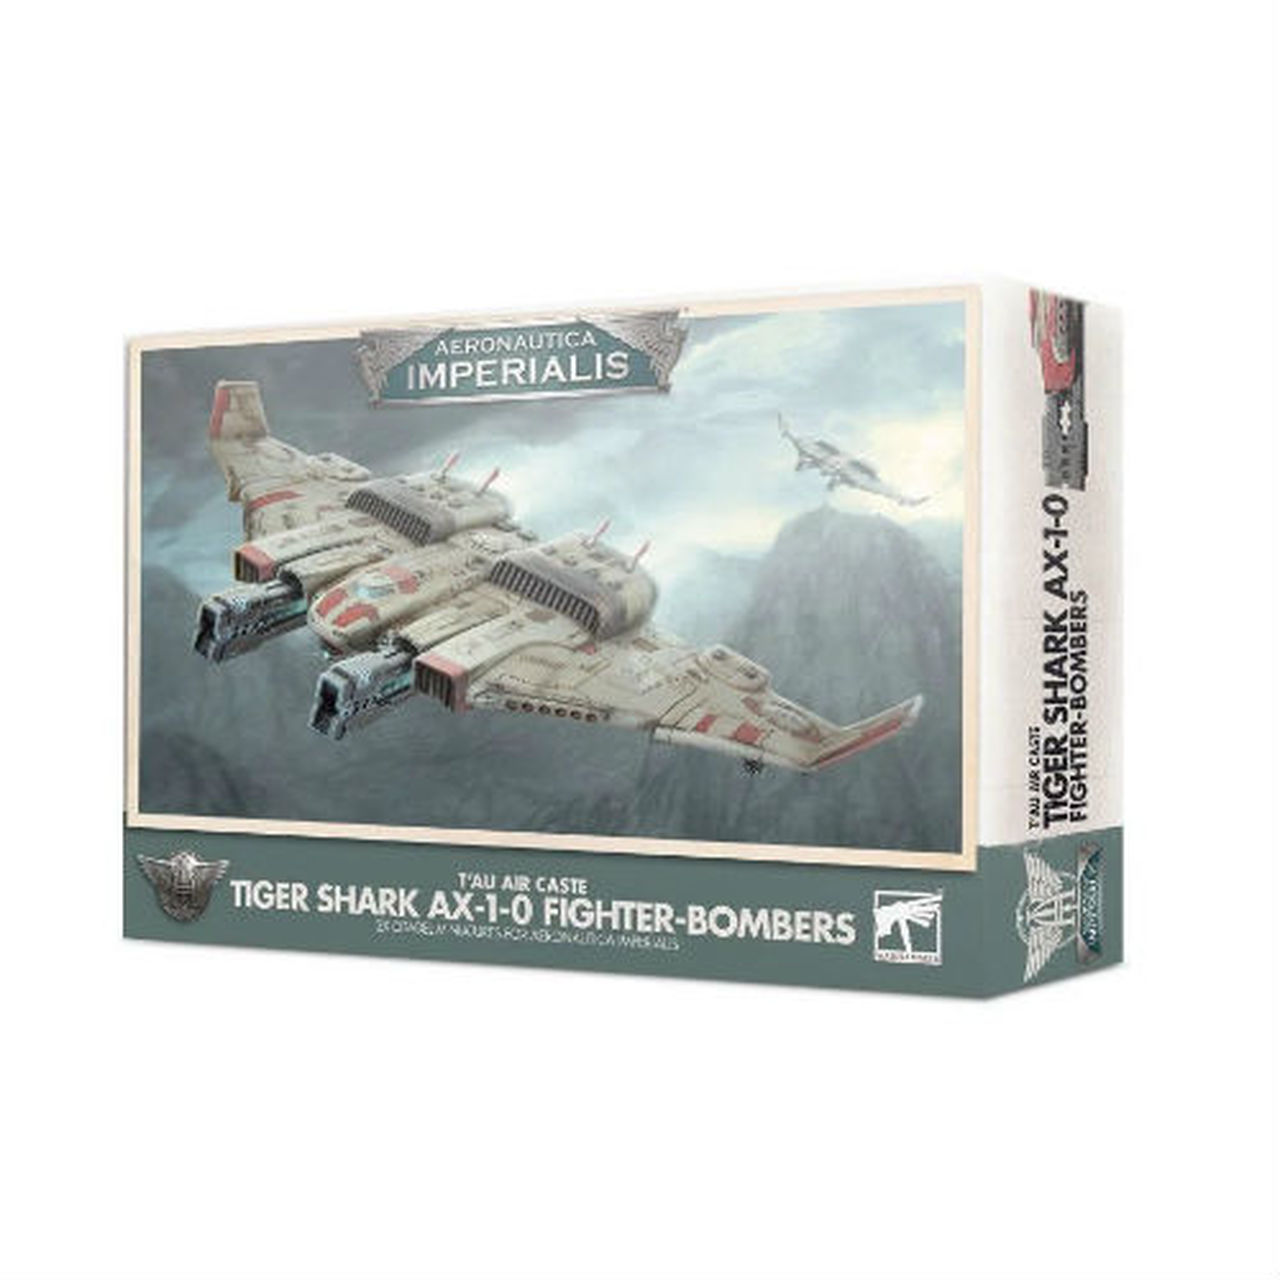 Aeronautica Imperialis: Tau Air Caste Tiger Shark AX 1-0 Fighter-Bombers